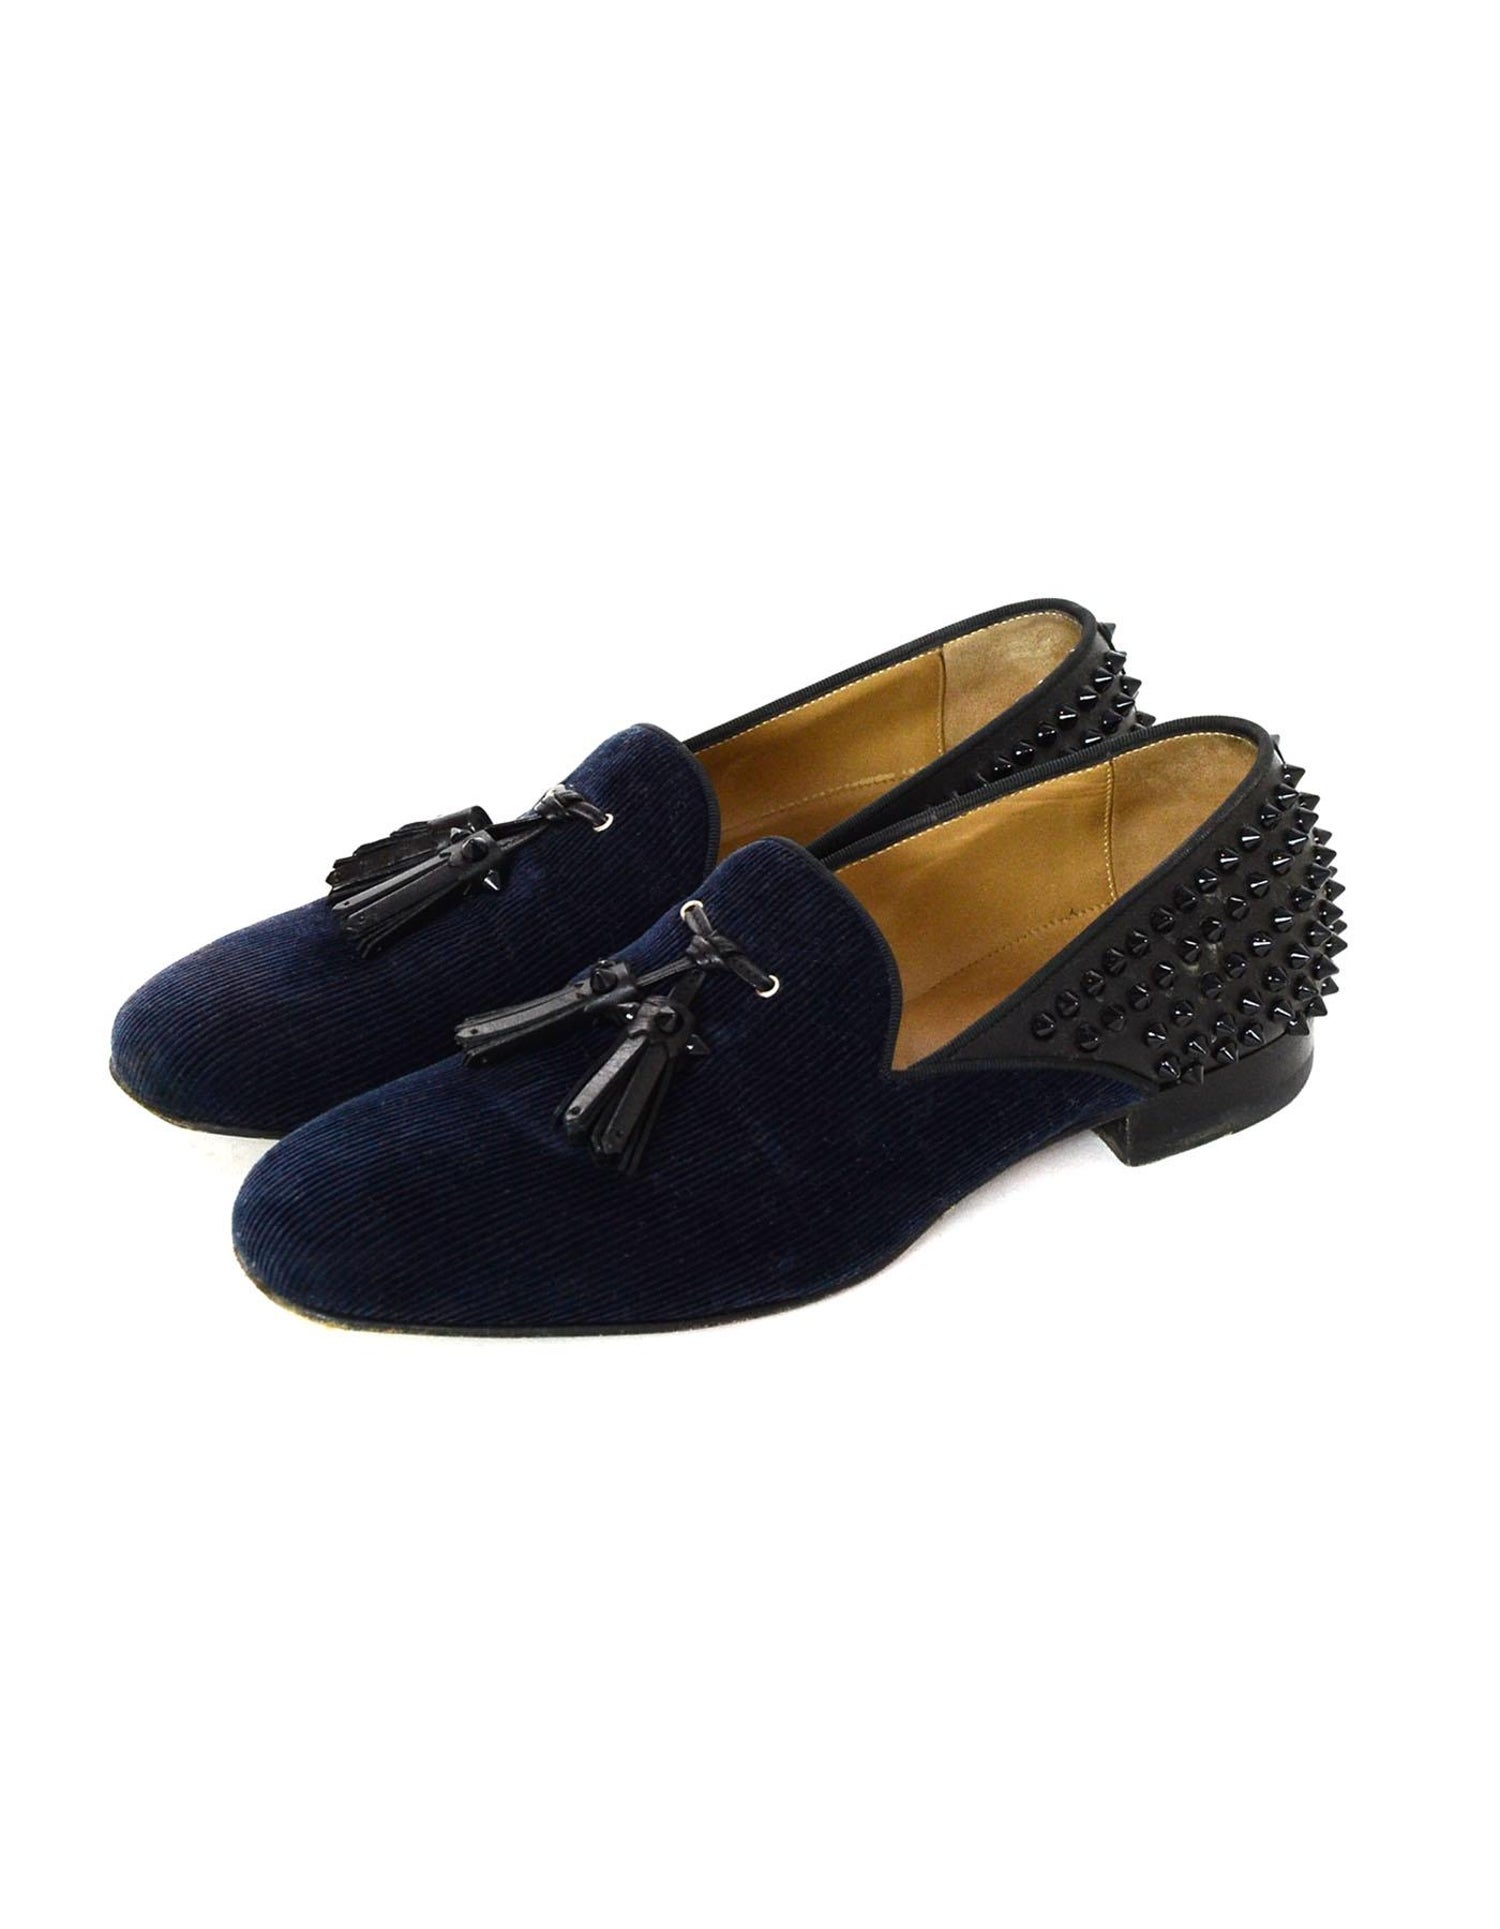 Christian Louboutin Men s Navy  Black Spike Loafers sz 41 For Sale at  1stdibs 4693c062f58d